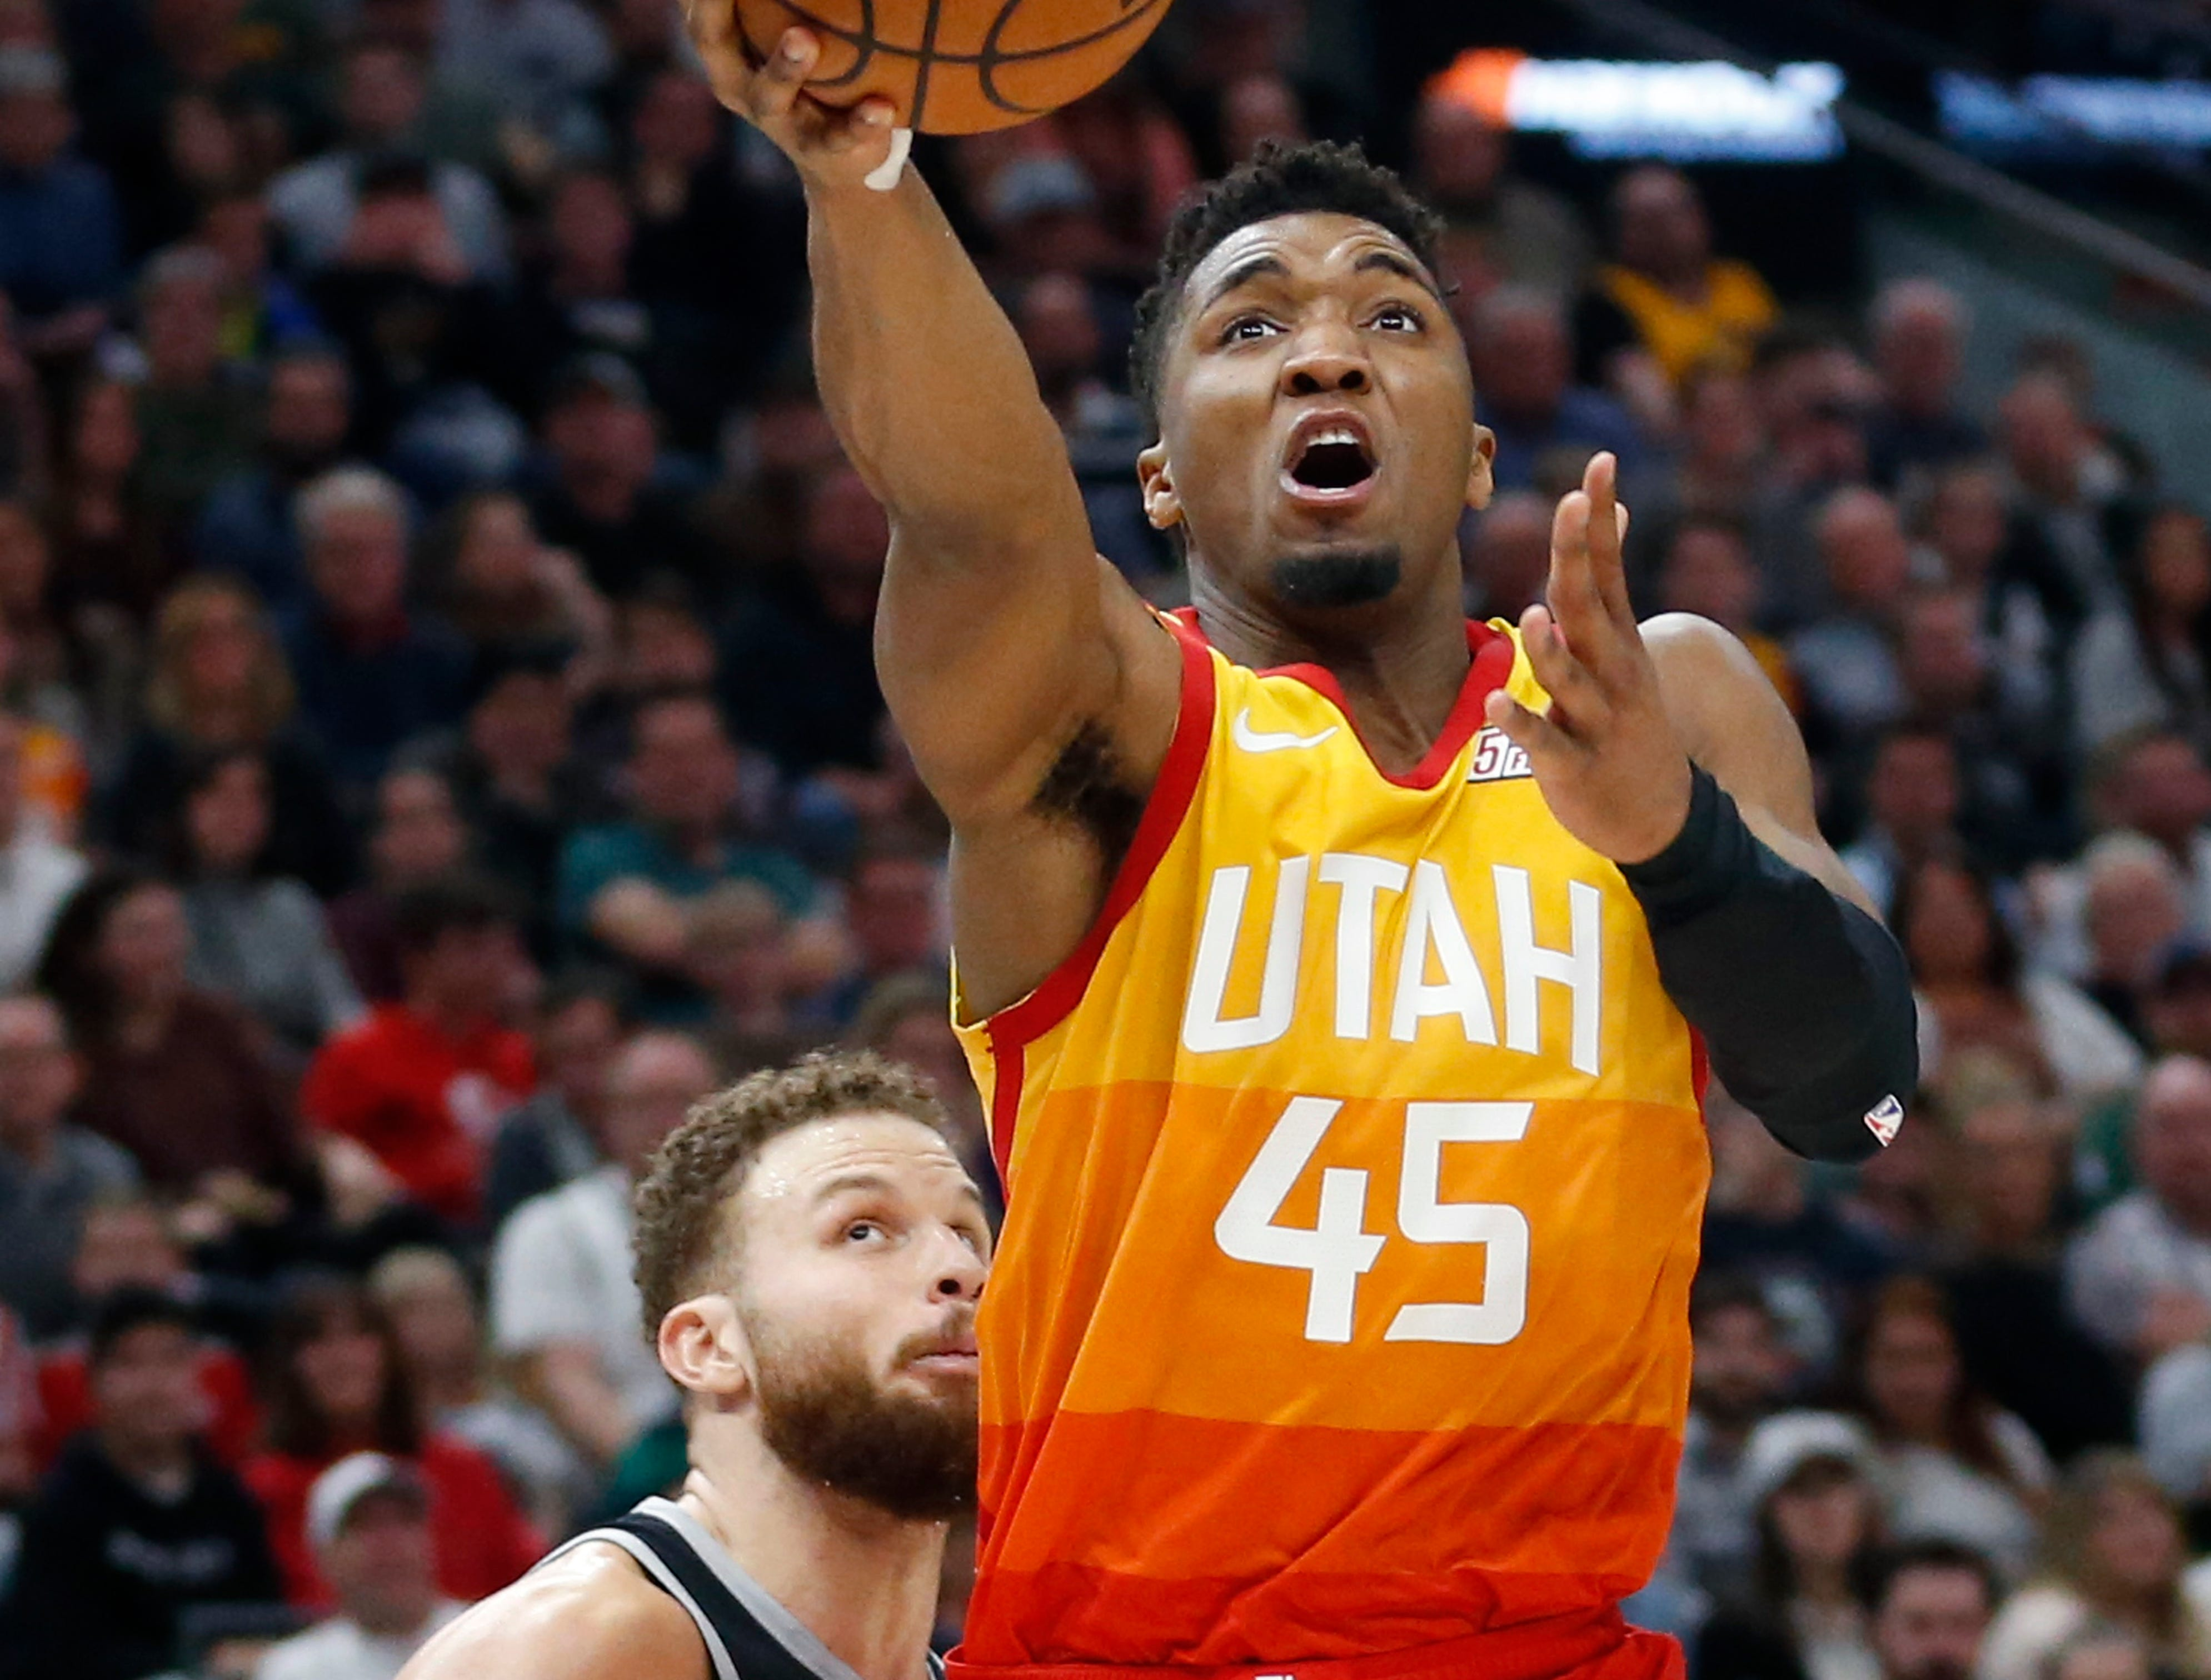 Jazz guard Donovan Mitchell lays up the ball as Pistons forward Blake Griffin, rear, looks on during the second half of the 100-94 loss to the Jazz on Monday, Jan. 14, 2019, in Salt Lake City.